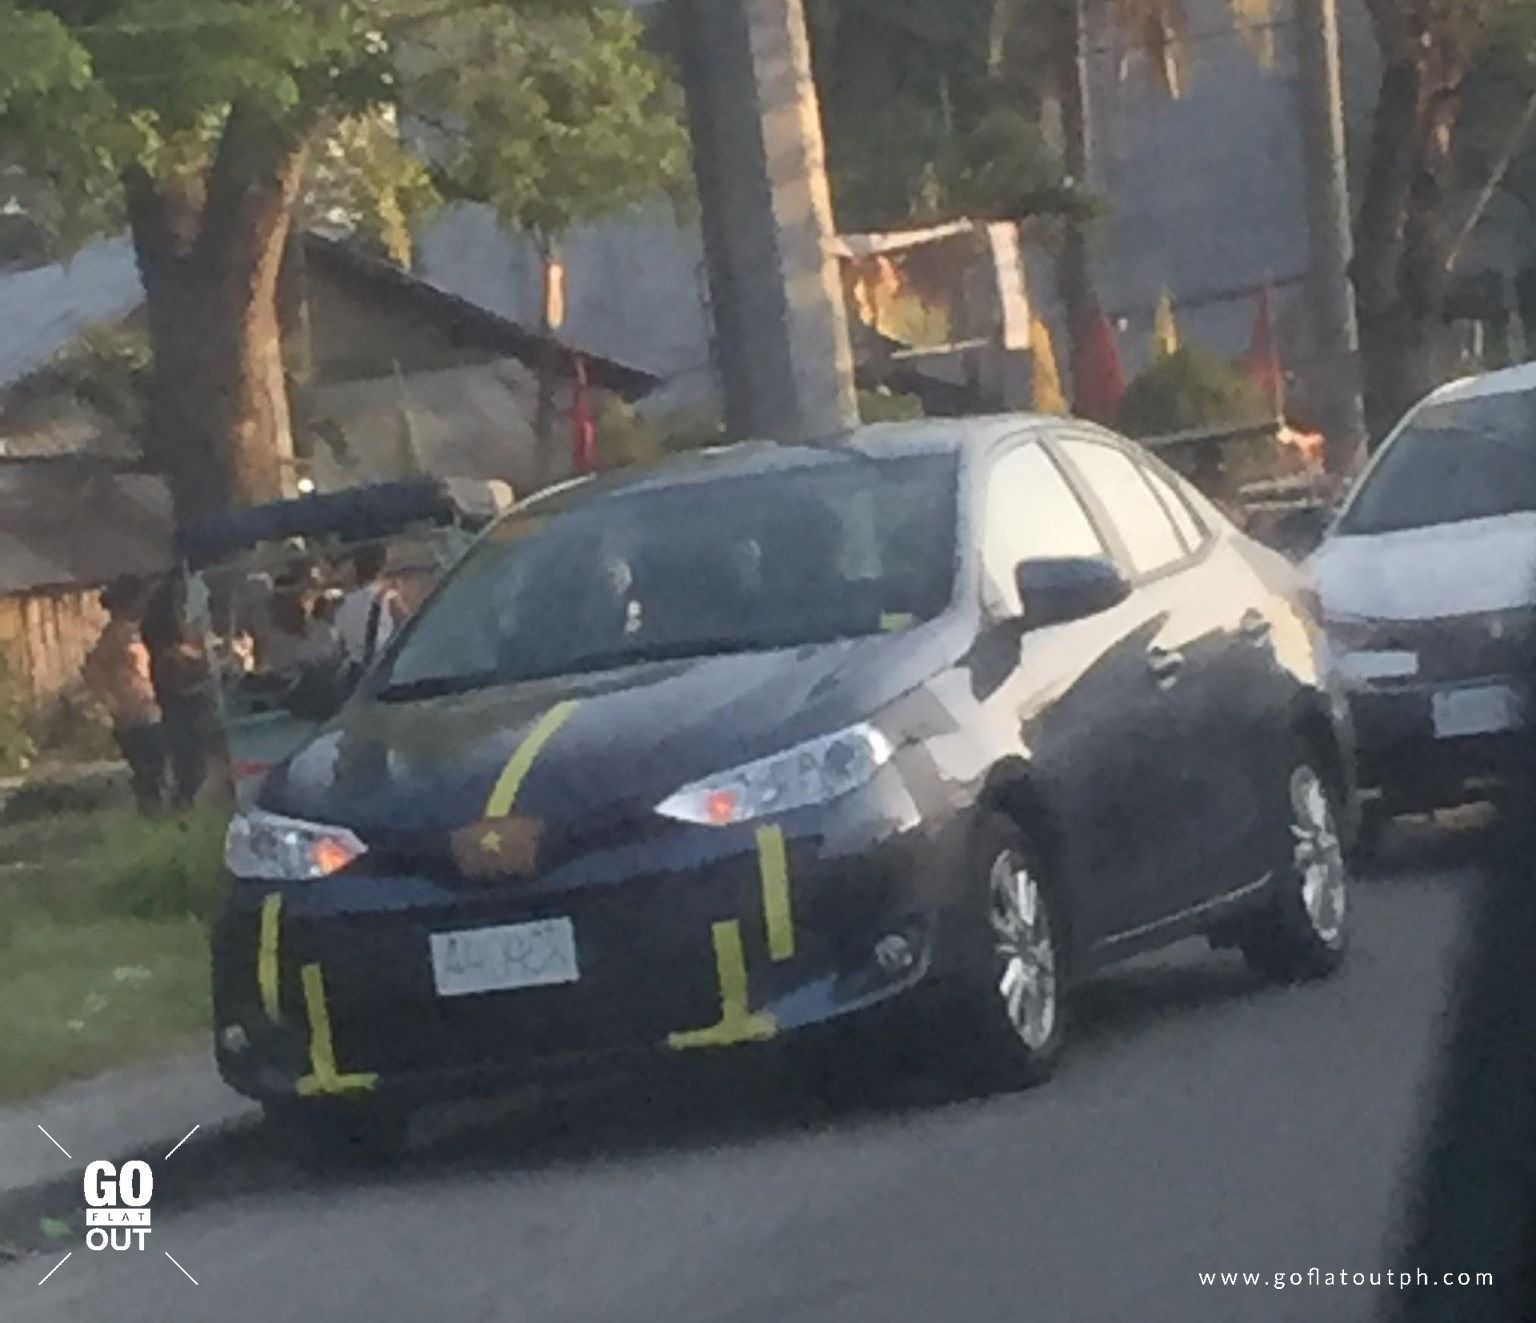 2019 Toyota Vios Spied Out In The Open At Santa Rosa Laguna Go